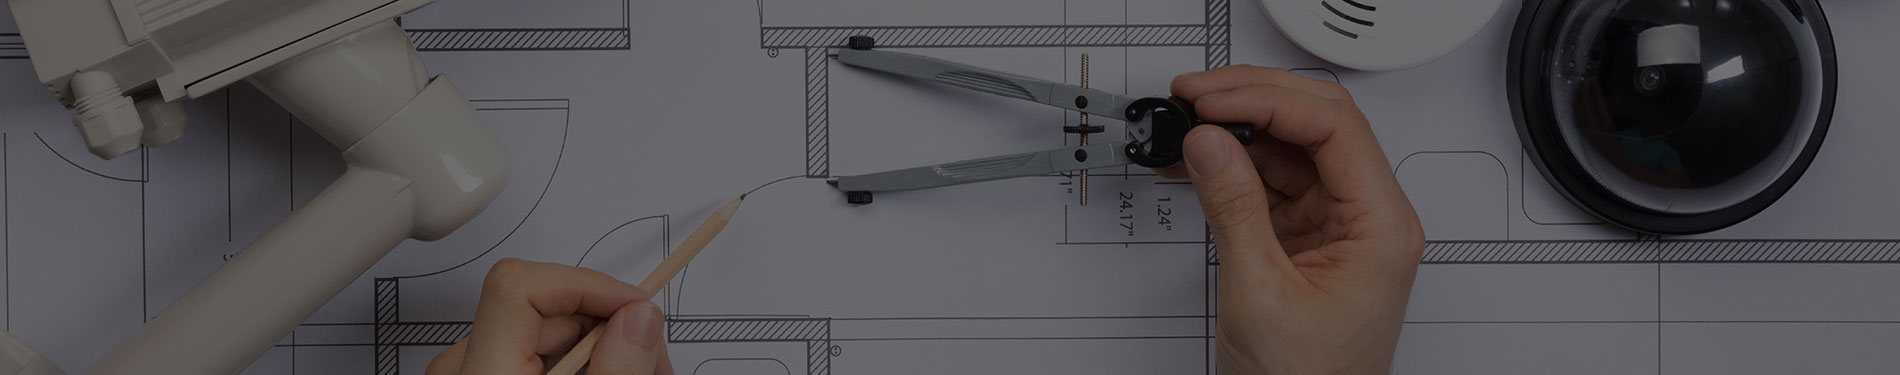 person using pencil and compass to design building plans